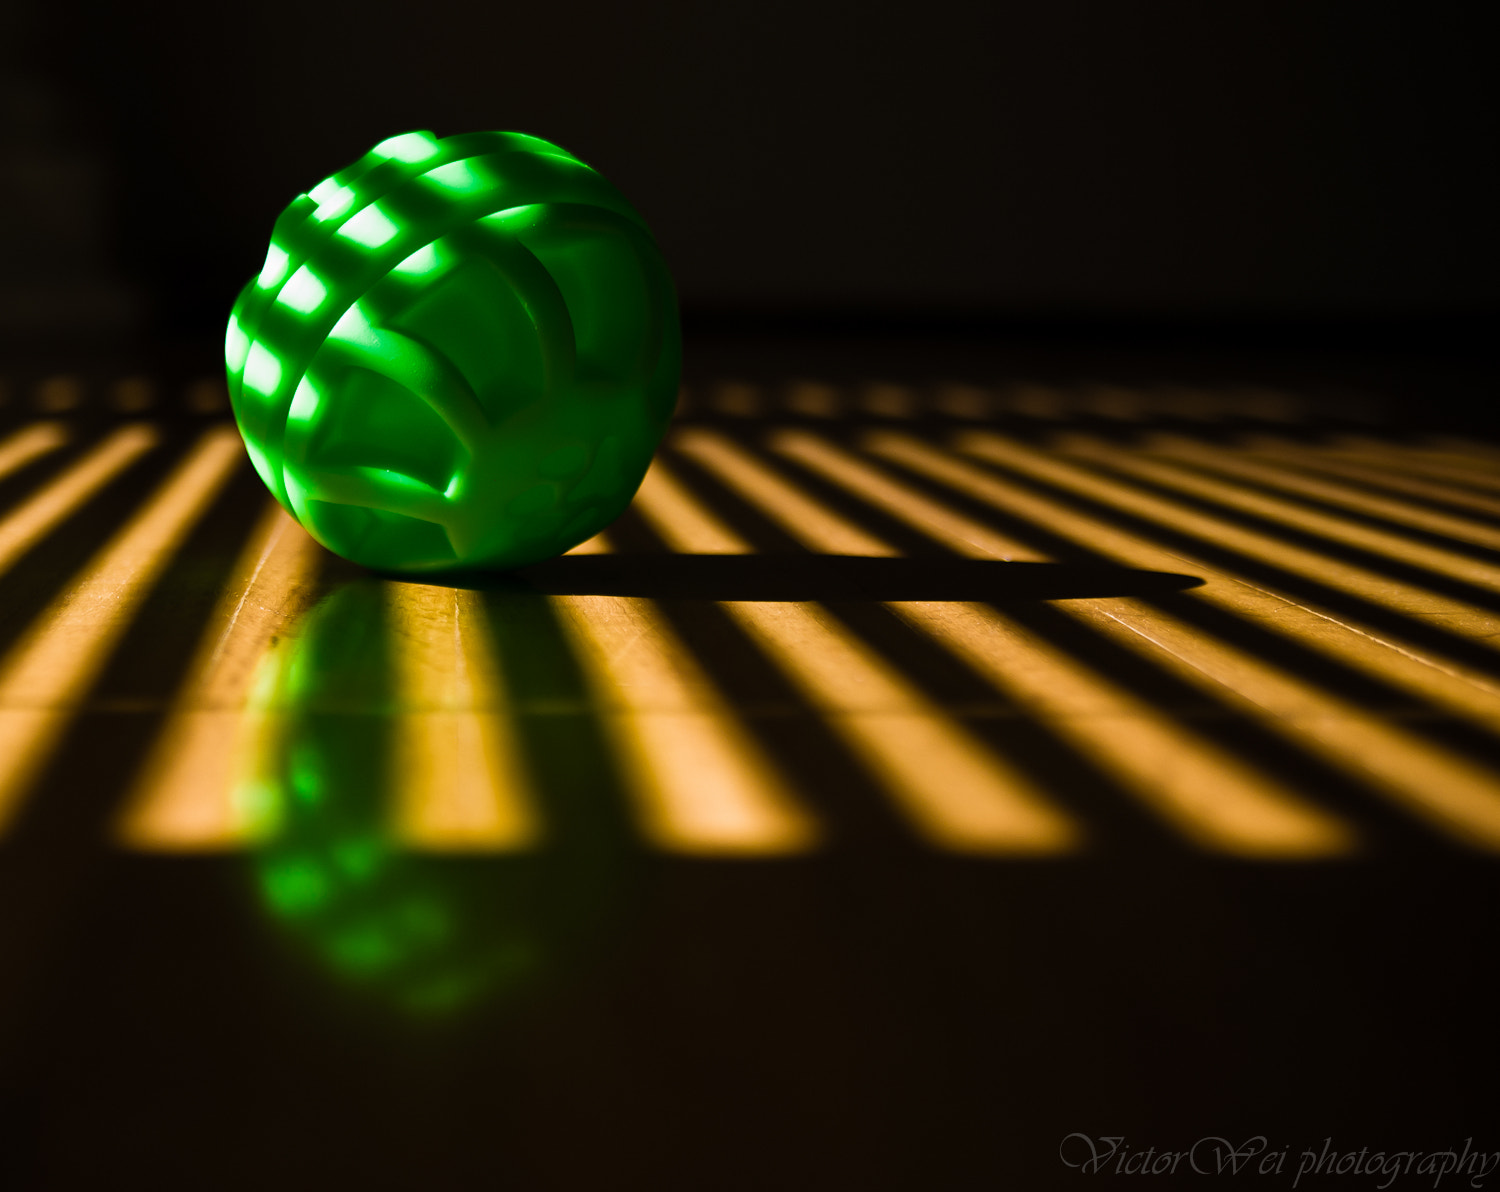 Photograph Grid of Shadows and Light by Victor Wei on 500px